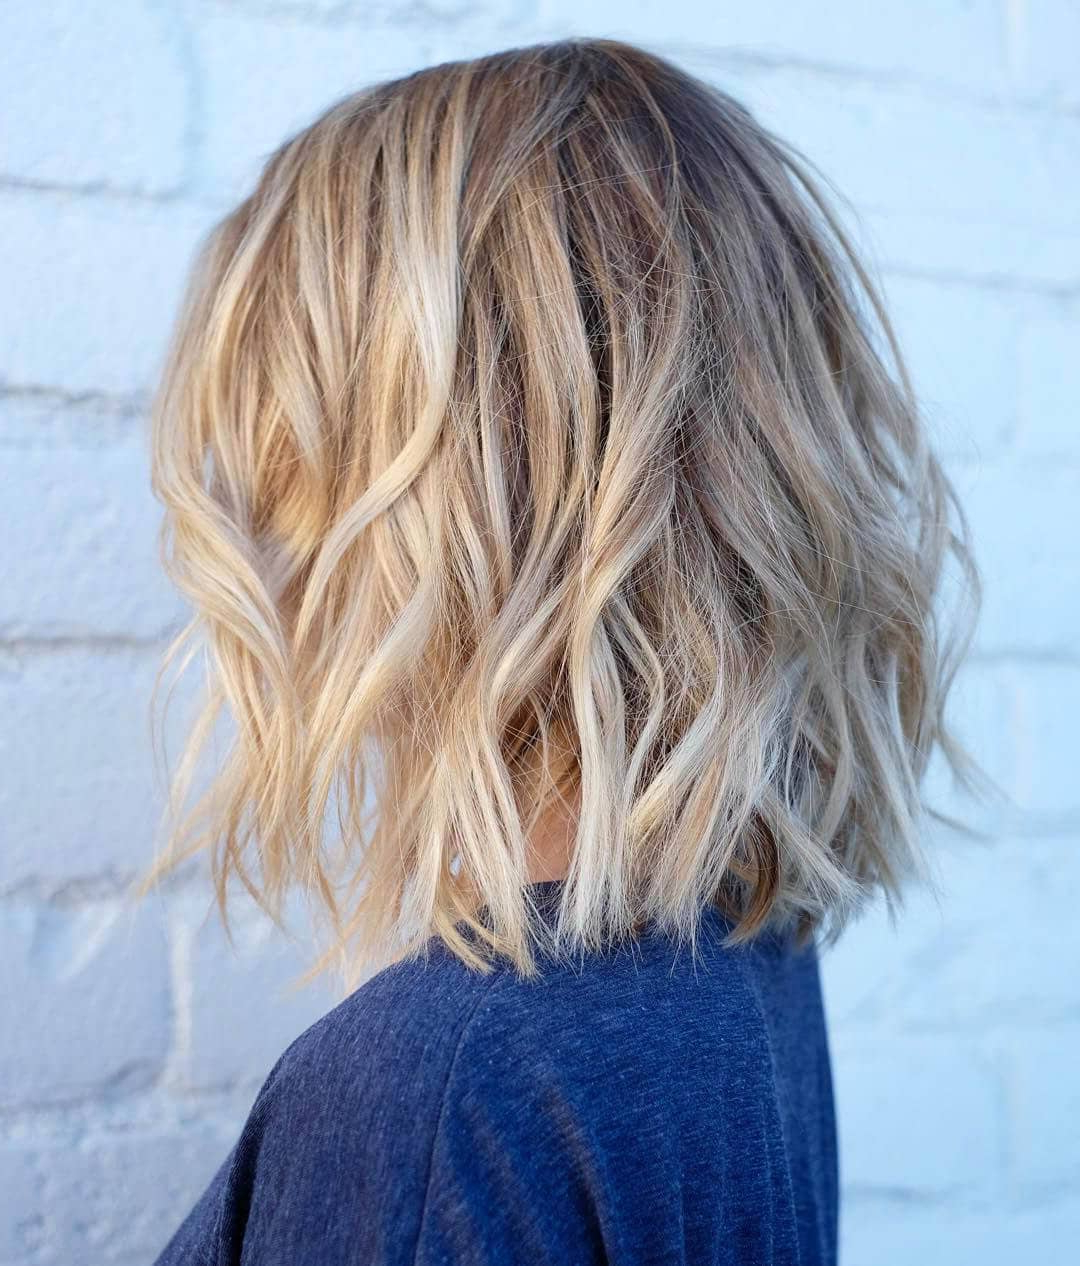 50 Fresh Short Blonde Hair Ideas To Update Your Style In 2018 Within Messy Jaw Length Blonde Balayage Bob Haircuts (View 9 of 20)